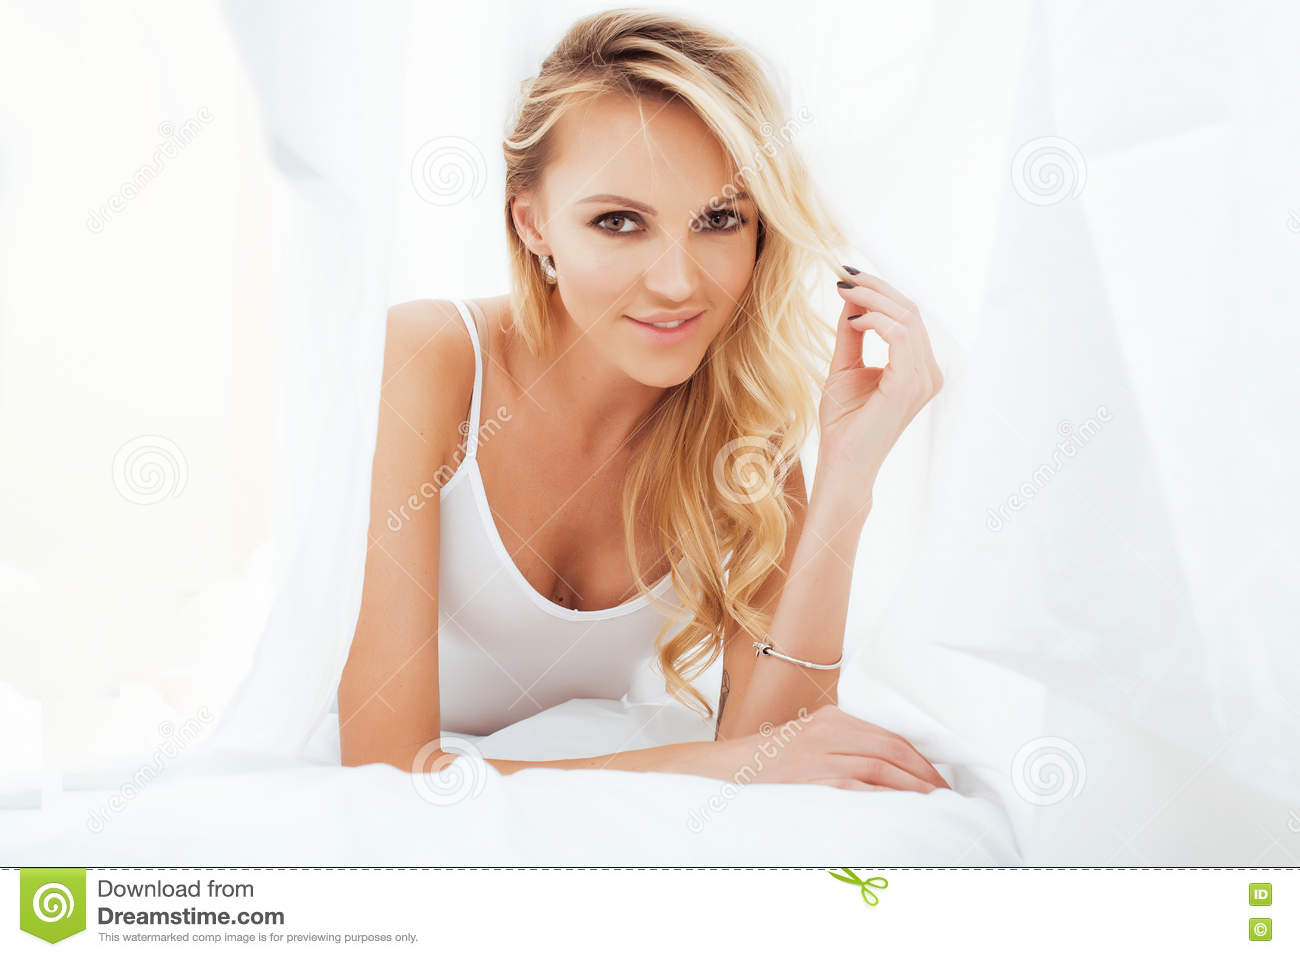 0b211e01b82b Young pretty blond woman in bed covered white sheets smiling cheerful look  close up